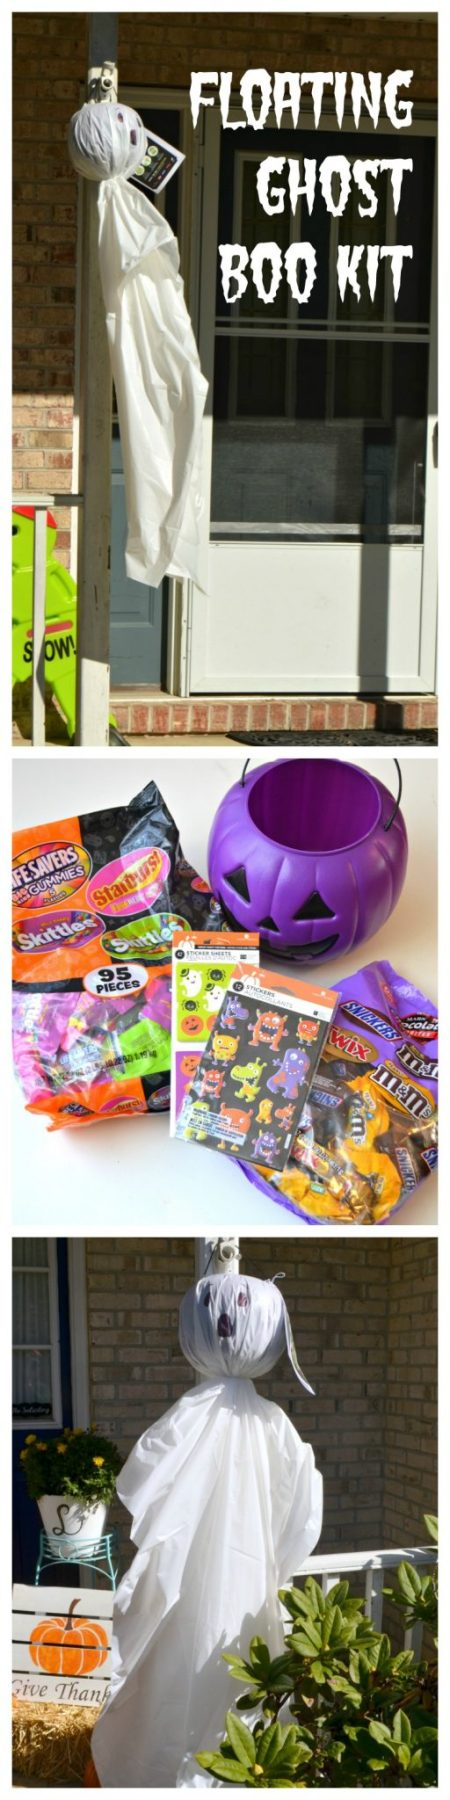 BOO Kit Floating Ghost Decoration